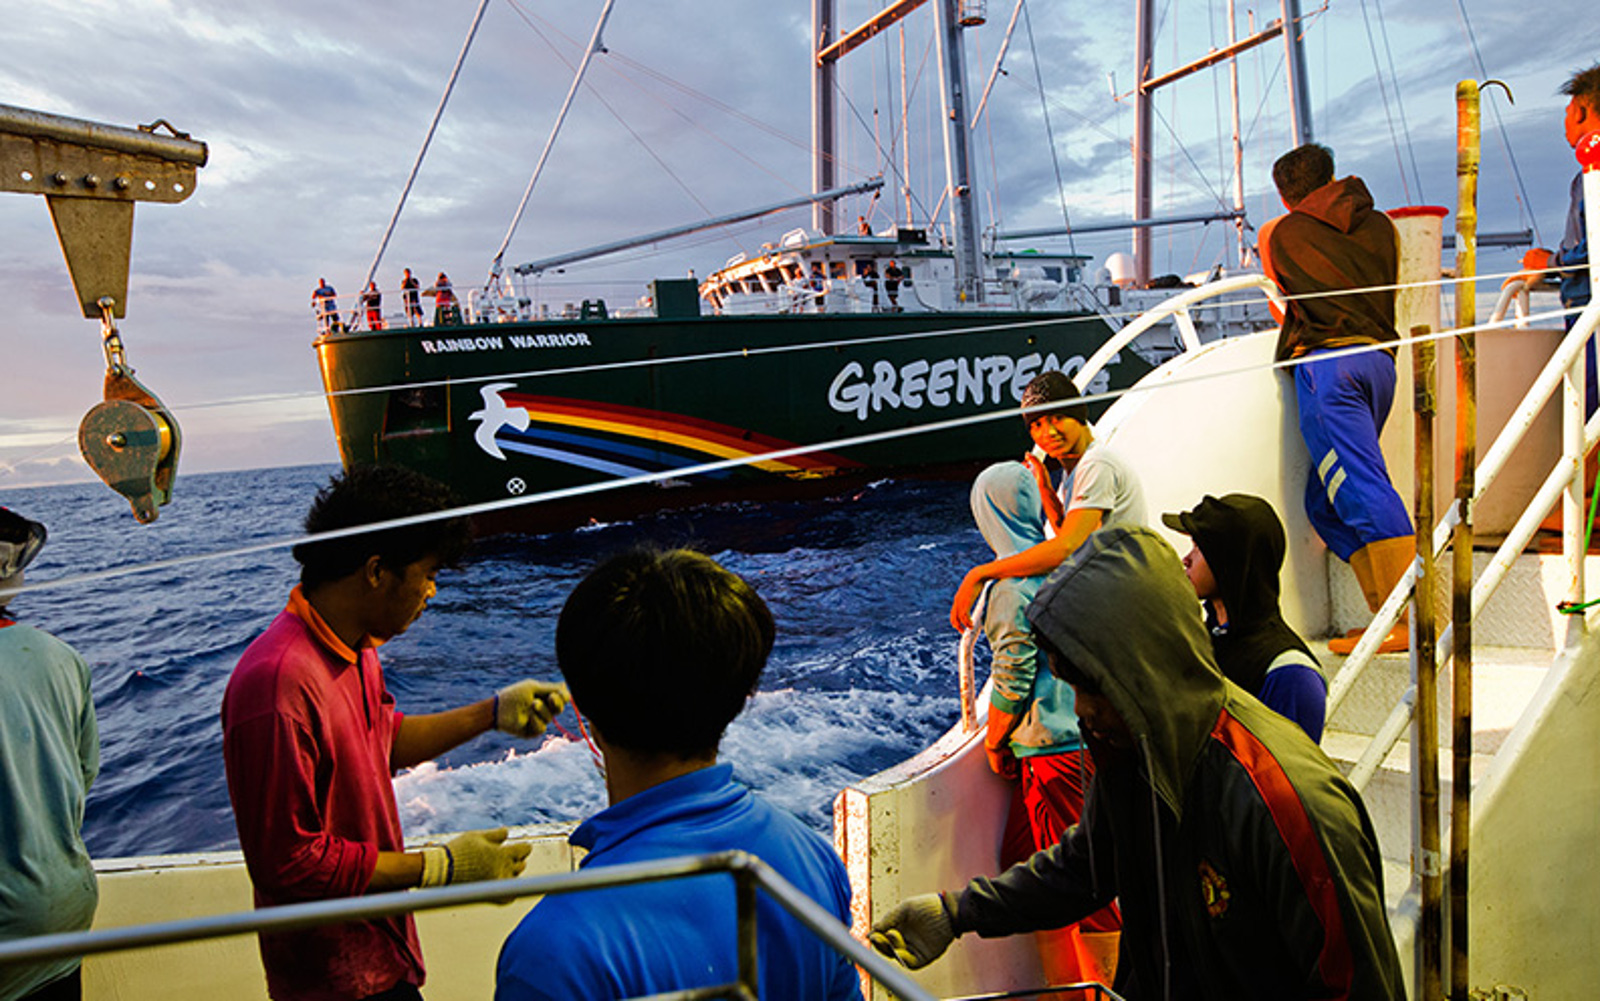 My Experience Busting an Illegal Fishing Vessel